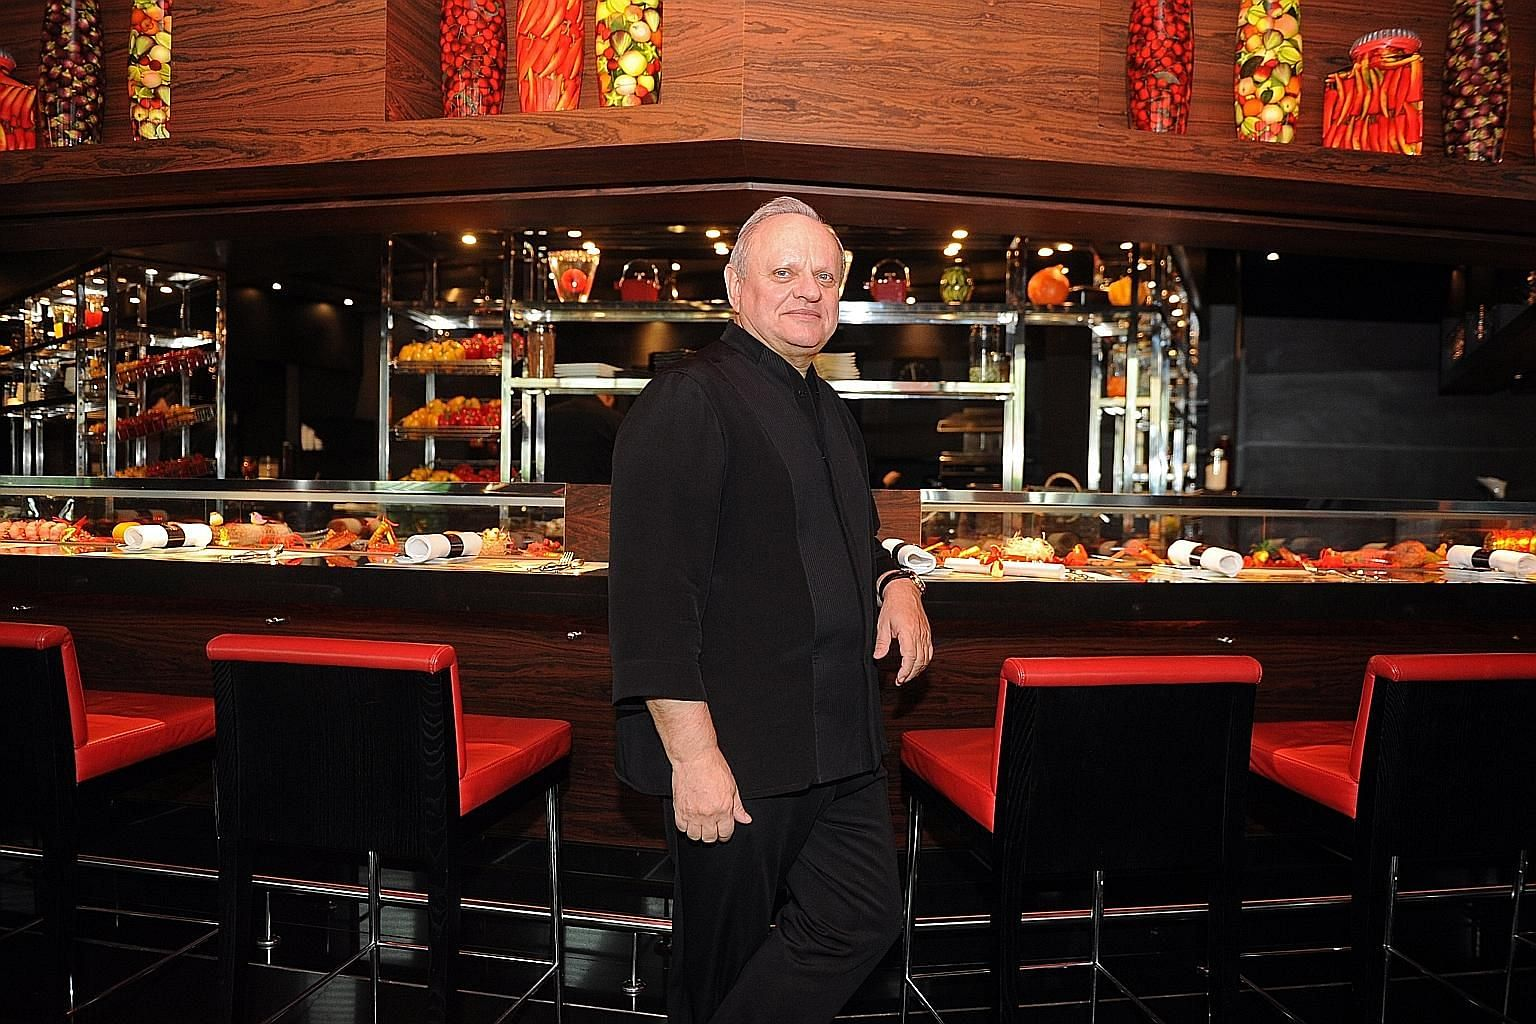 Chef Joel Robuchon, who has over 25 restaurants worldwide, introduced new chefs for Joel Robuchon Restaurant and L'Atelier de Joel Robuchon at Resorts World Sentosa in November last year. The impending closure of the two outlets comes just months aft